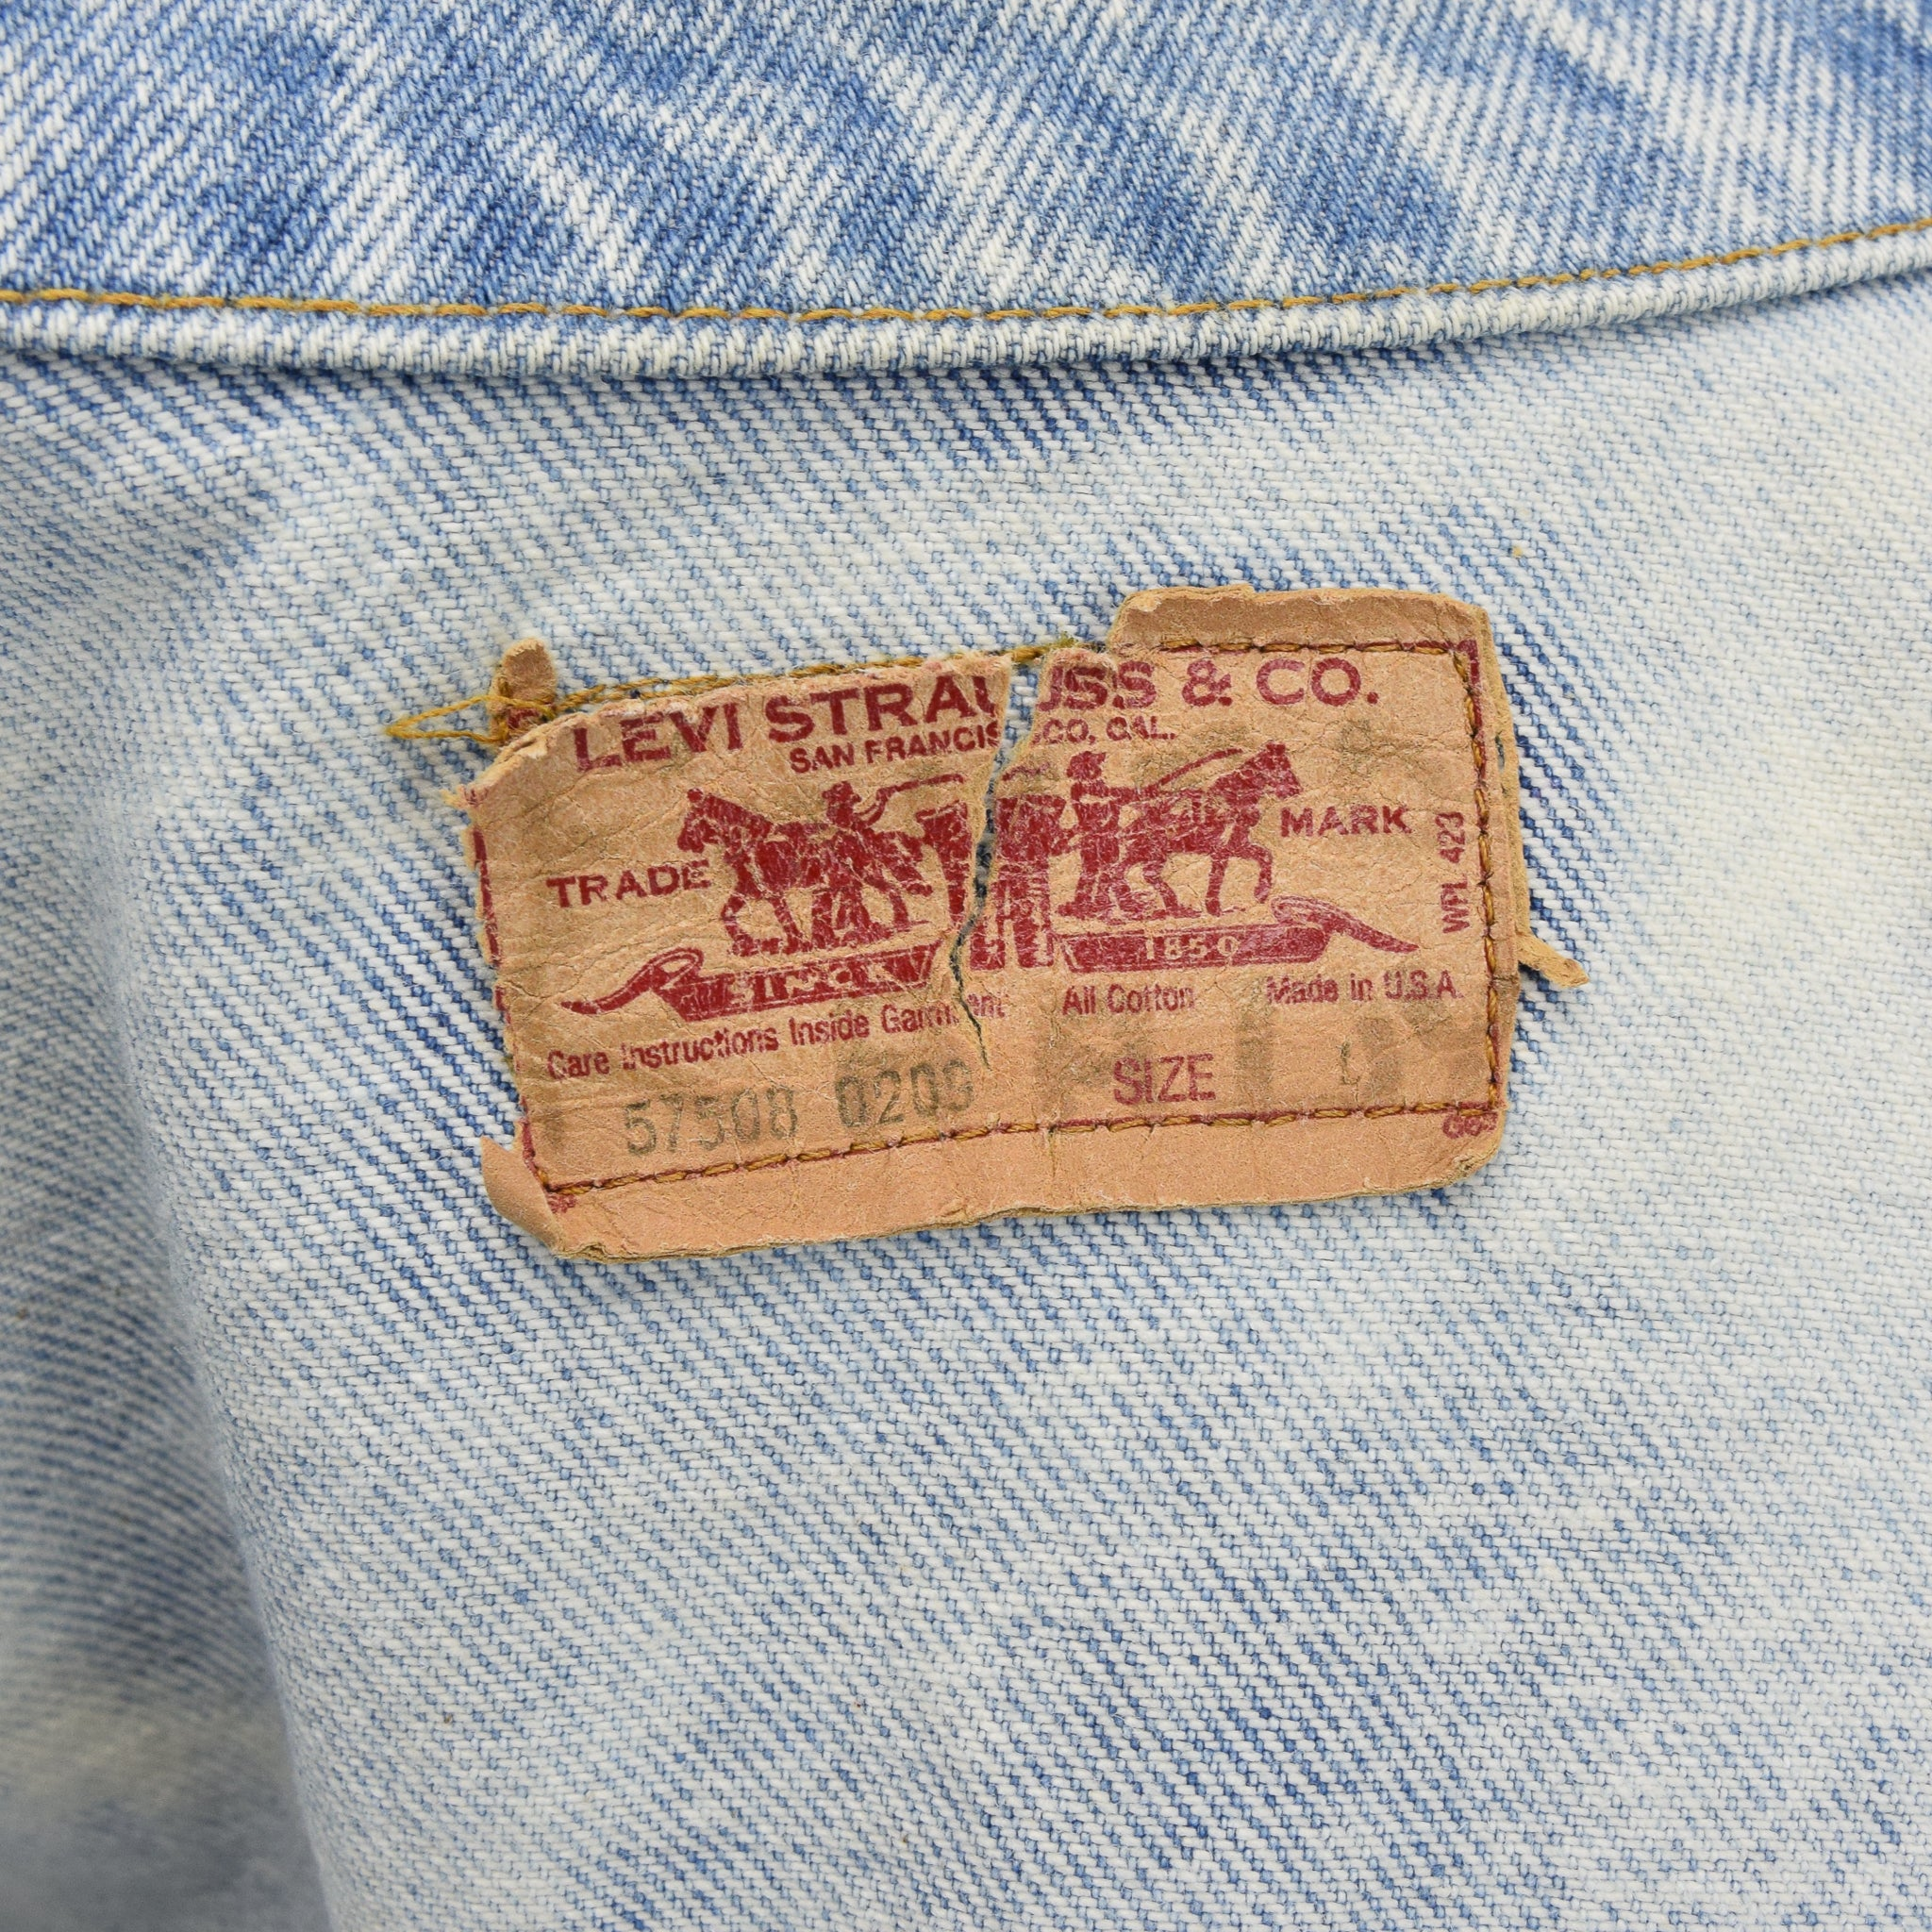 Vintage Levi 57508 Red Tab Bleached Blue Denim Trucker Jacket Made in USA S label